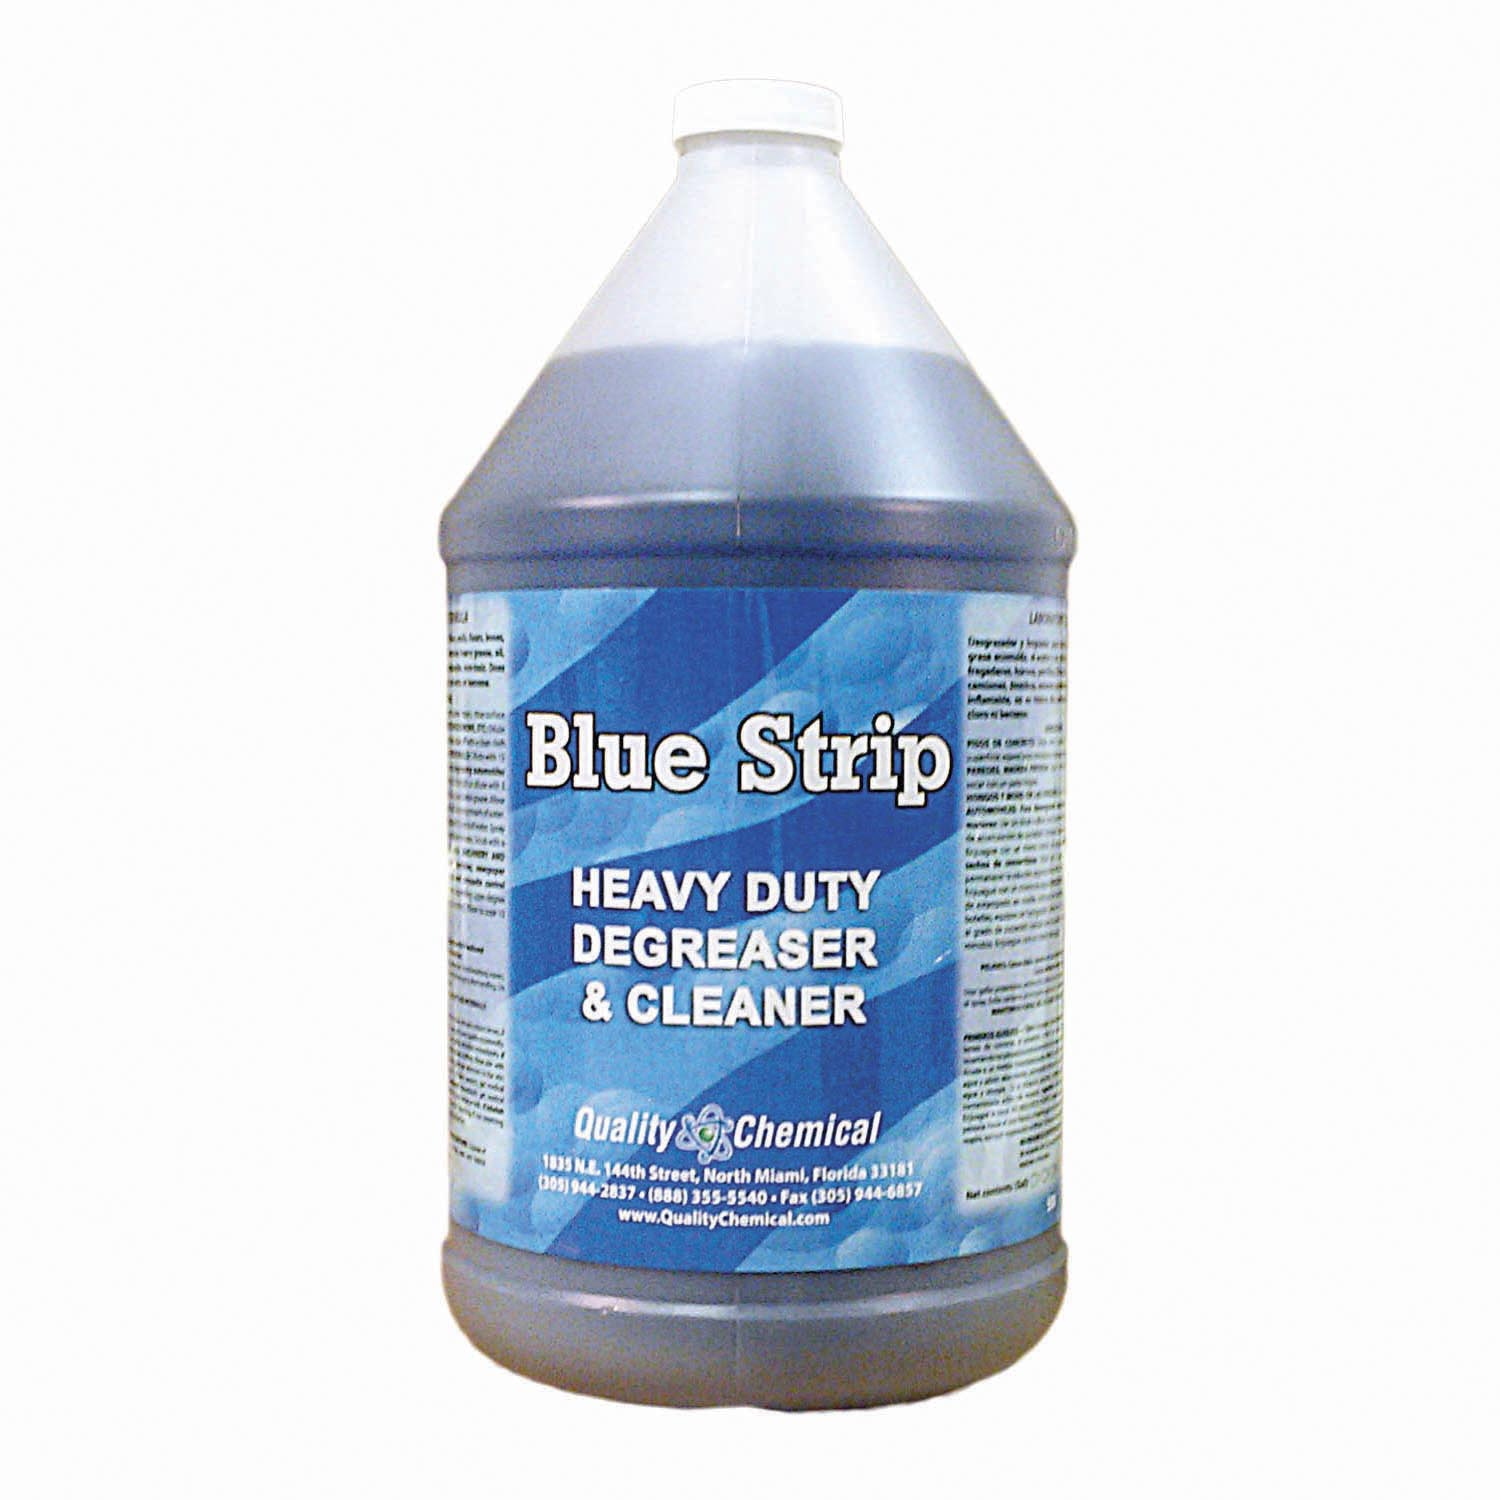 Blue Strip Heavy-Duty Degreaser